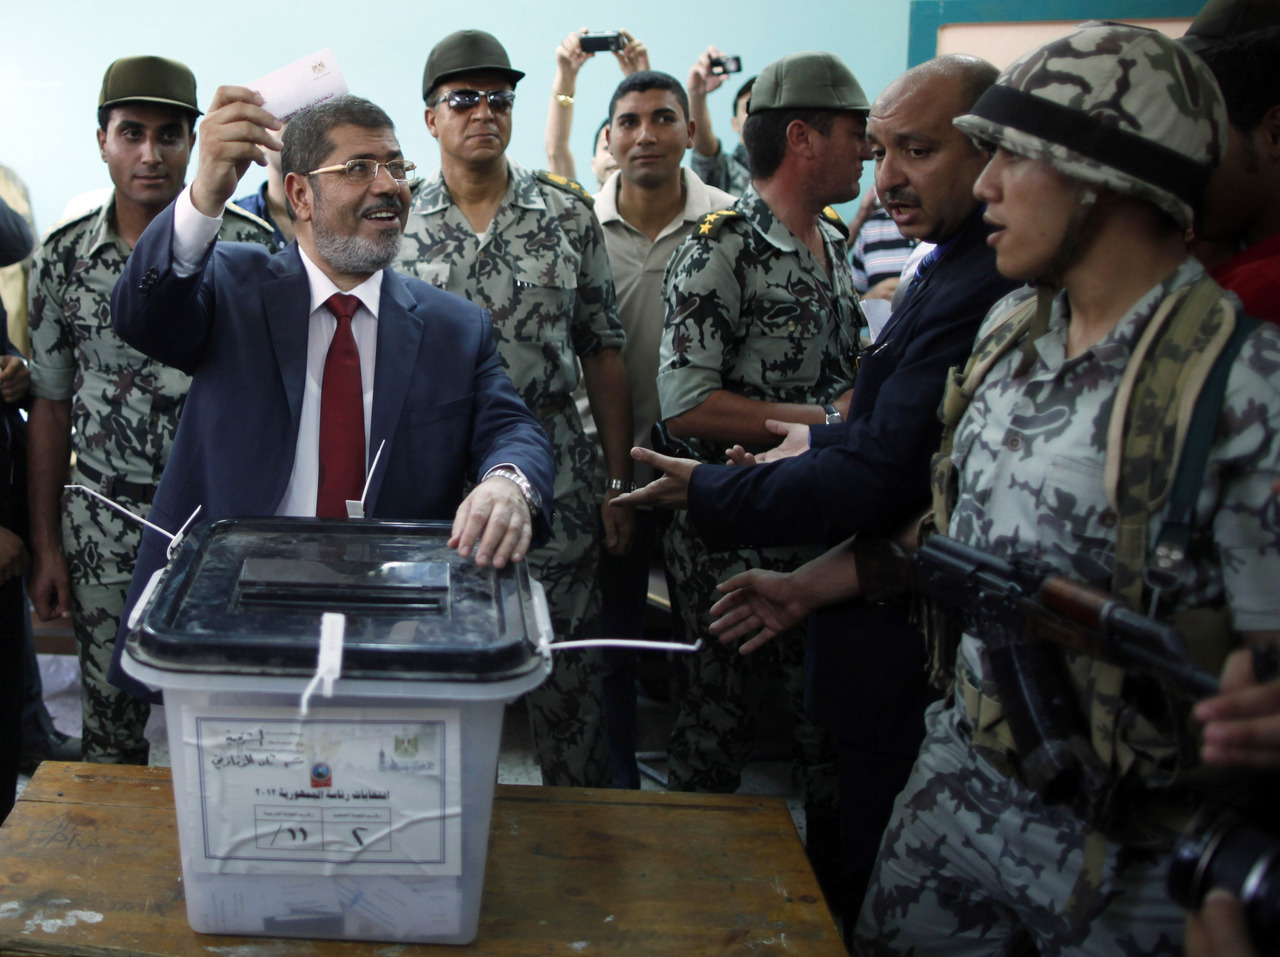 Islamist Mohamed Morsy of the Muslim Brotherhood was declared Egypt's first democratic president on Sunday by the state election committee, which said he had defeated former general Ahmed Shafik with 51.7 percent of last weekend's run-off vote. He succeeds Hosni Mubarak, who was overthrown 16 months ago after a popular uprising. The military council which has ruled the biggest Arab nation since then has this month curbed the powers of the presidency, meaning the head of state will have to work closely with the army on a planned democratic constitution. READ MORE: Islamist Morsy wins Egyptian presidency with 52 percent